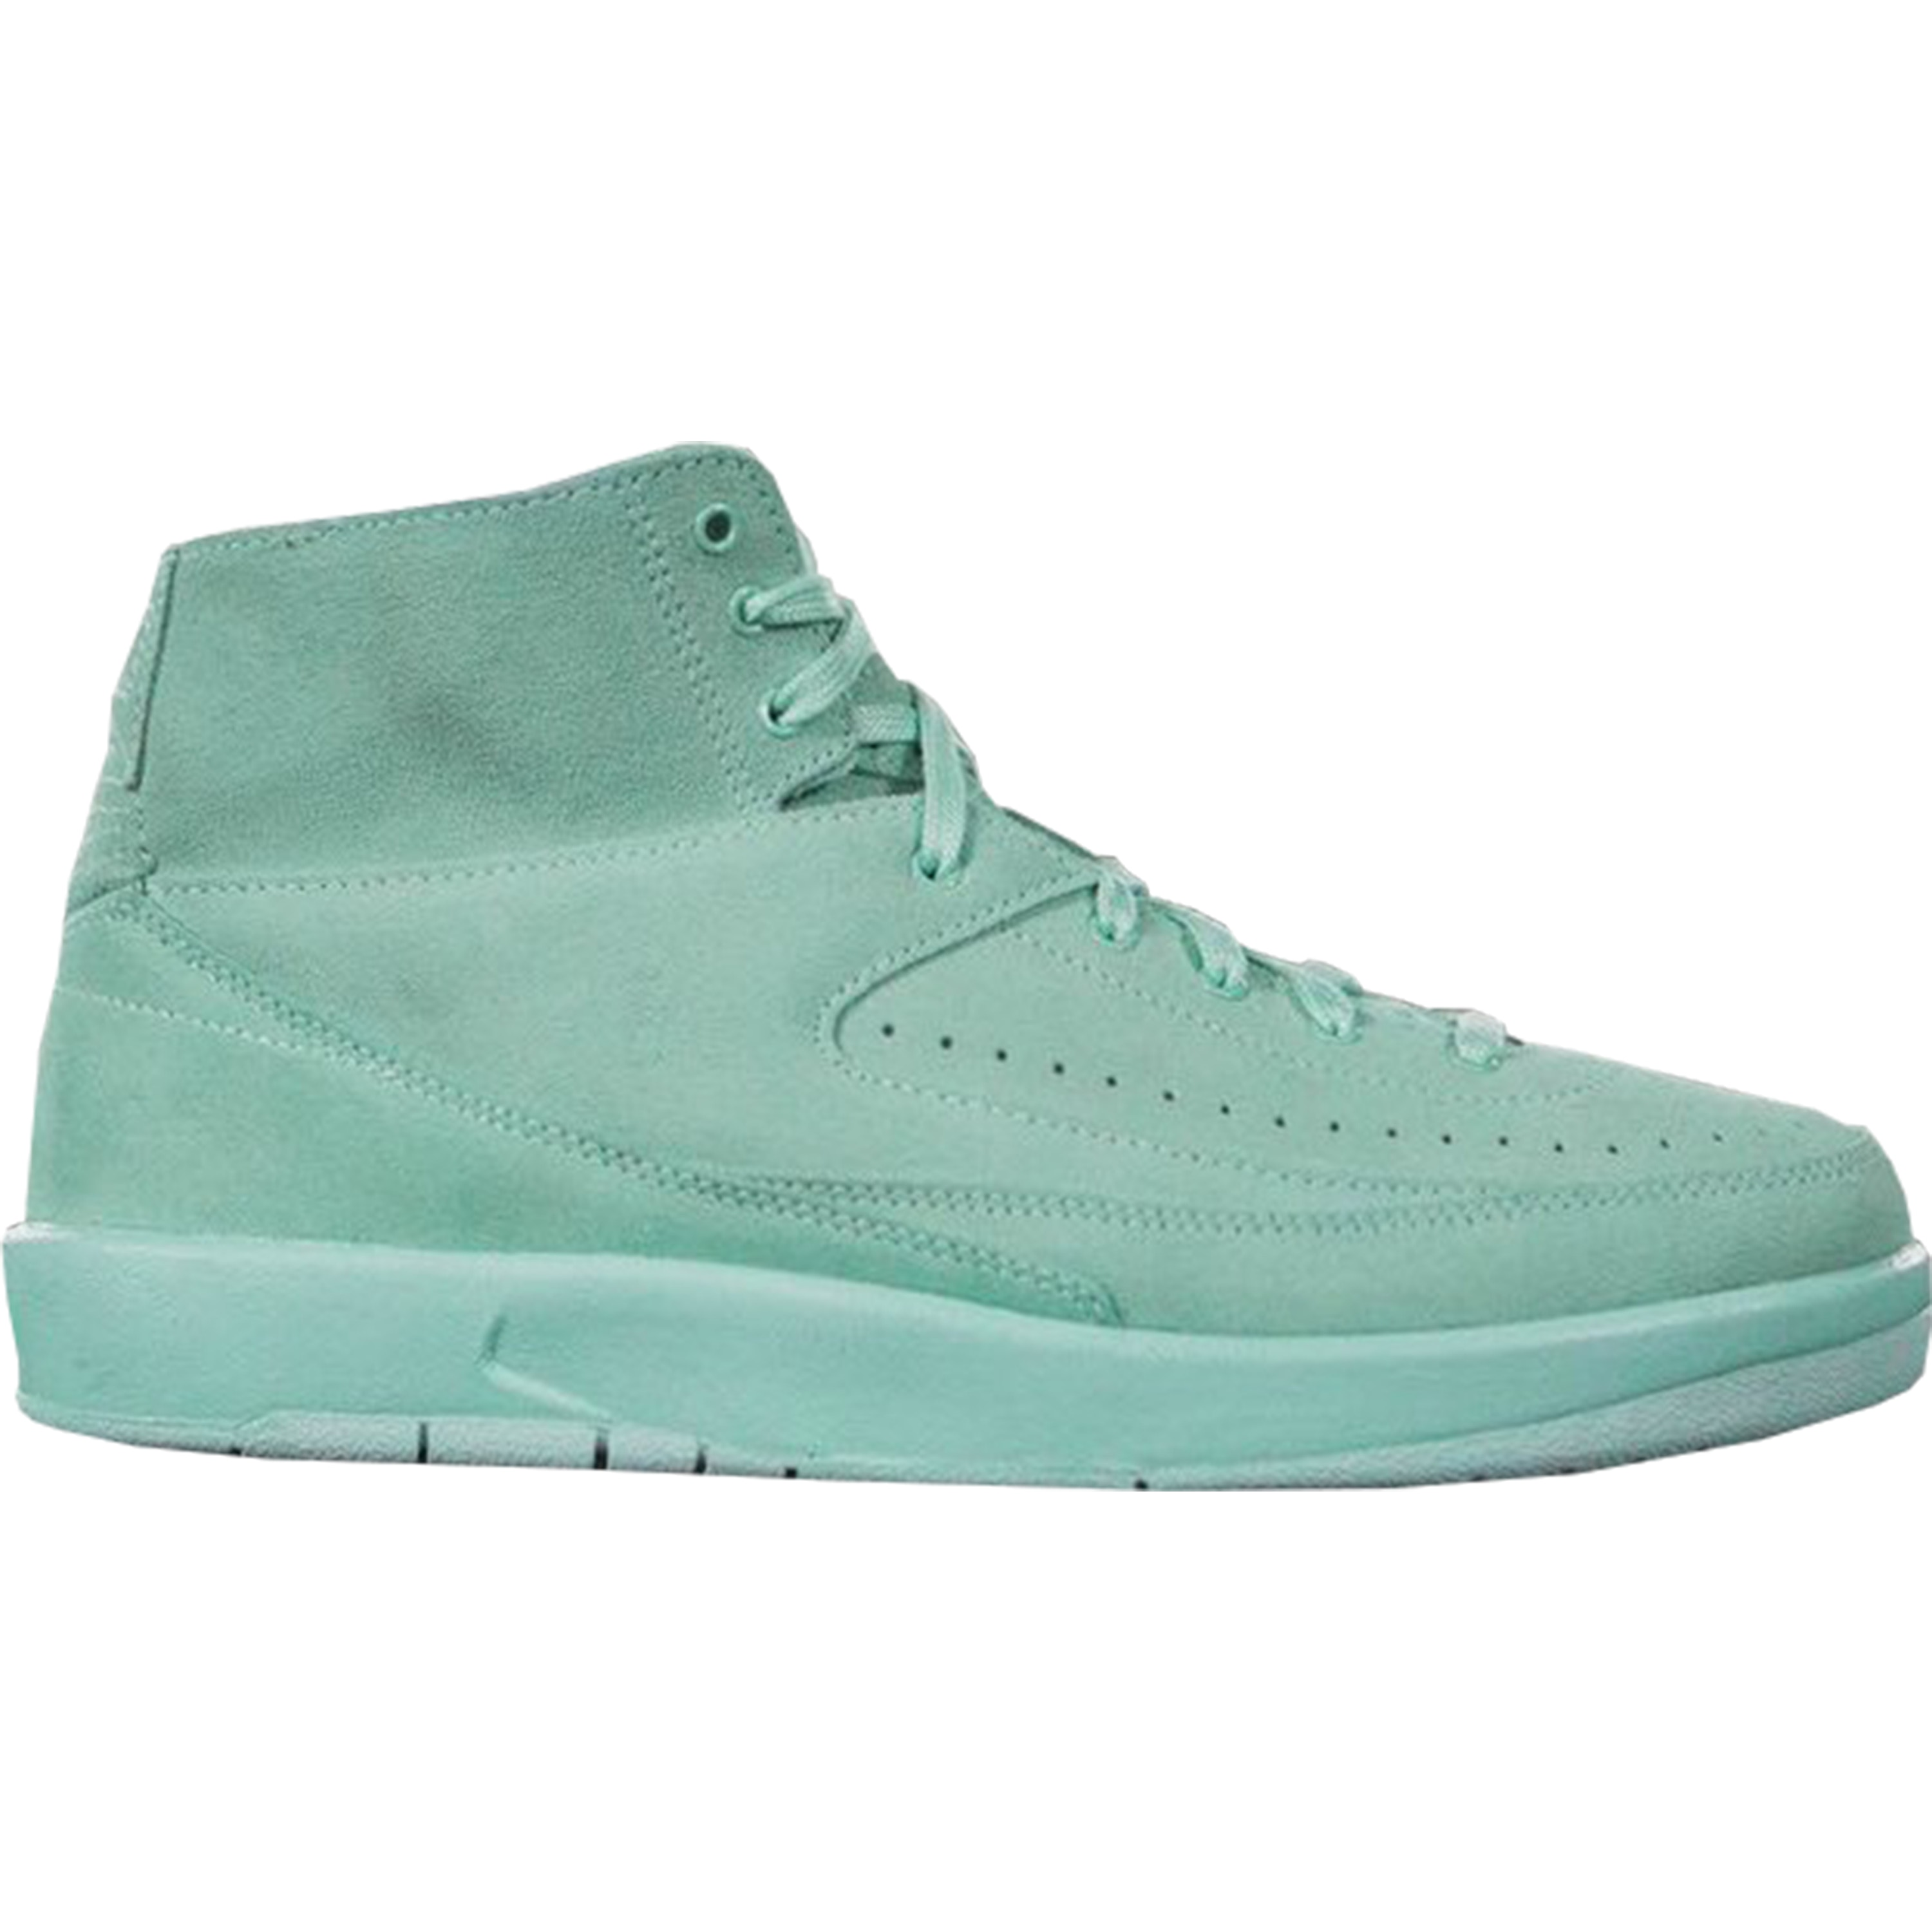 Jordan 2 Retro Decon Mint Foam (897521-303)